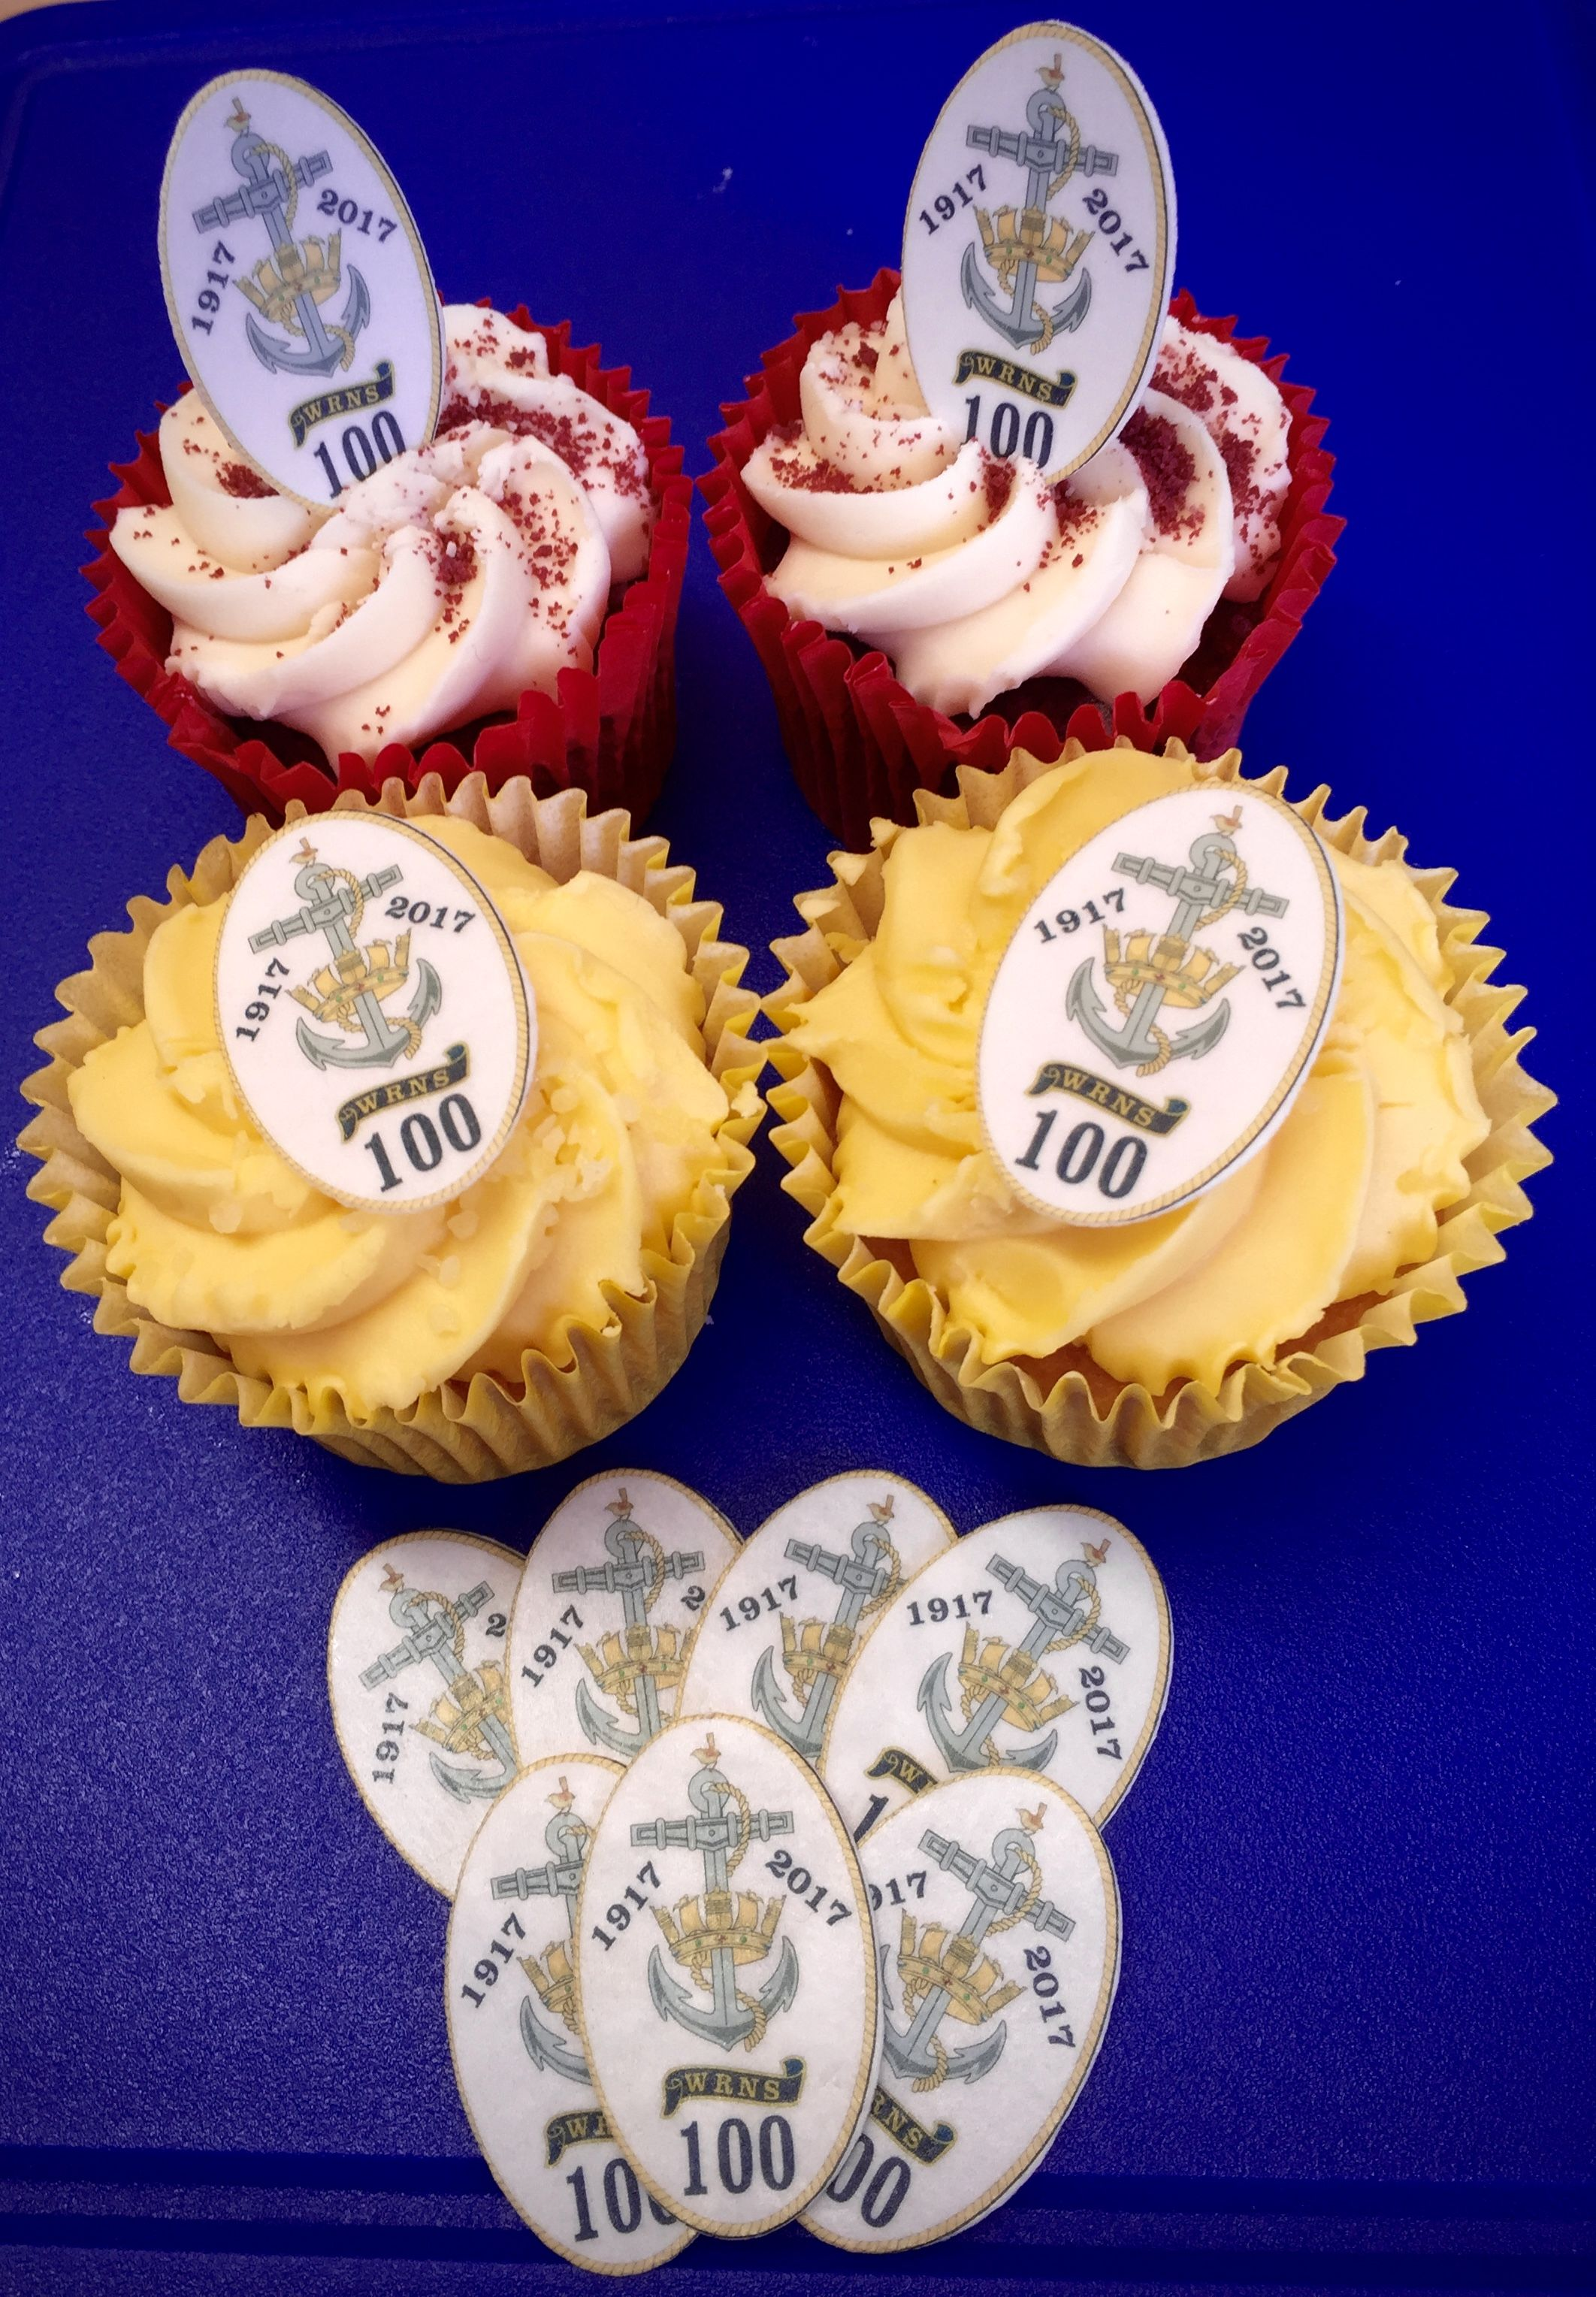 WRNS100 Project specially commissioned cake toppers